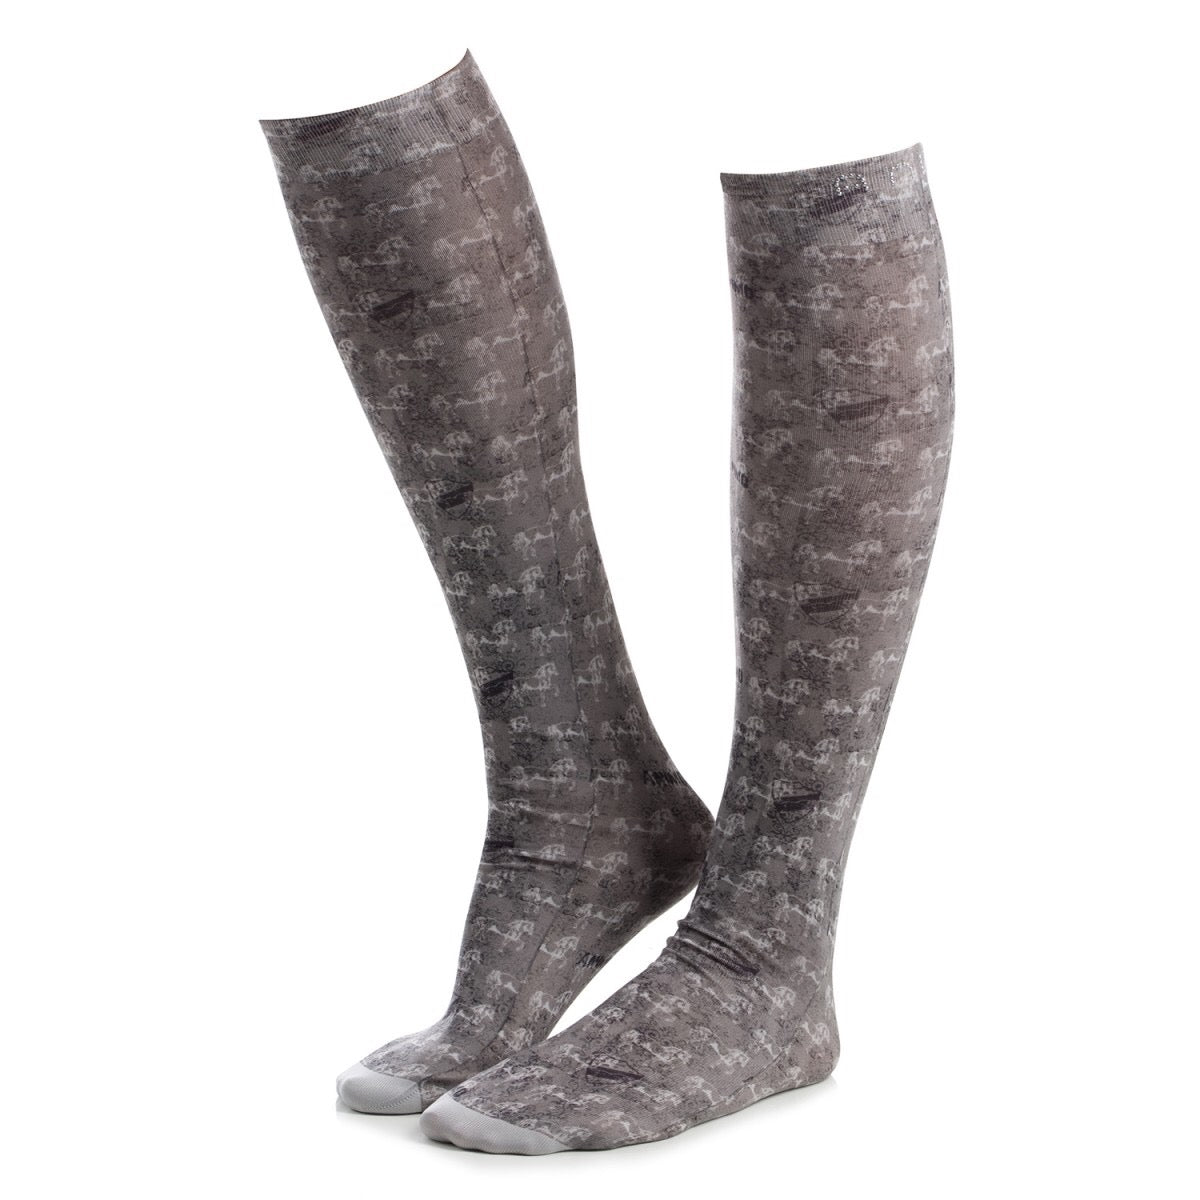 Animo Tadan Socks - Luxe EQ